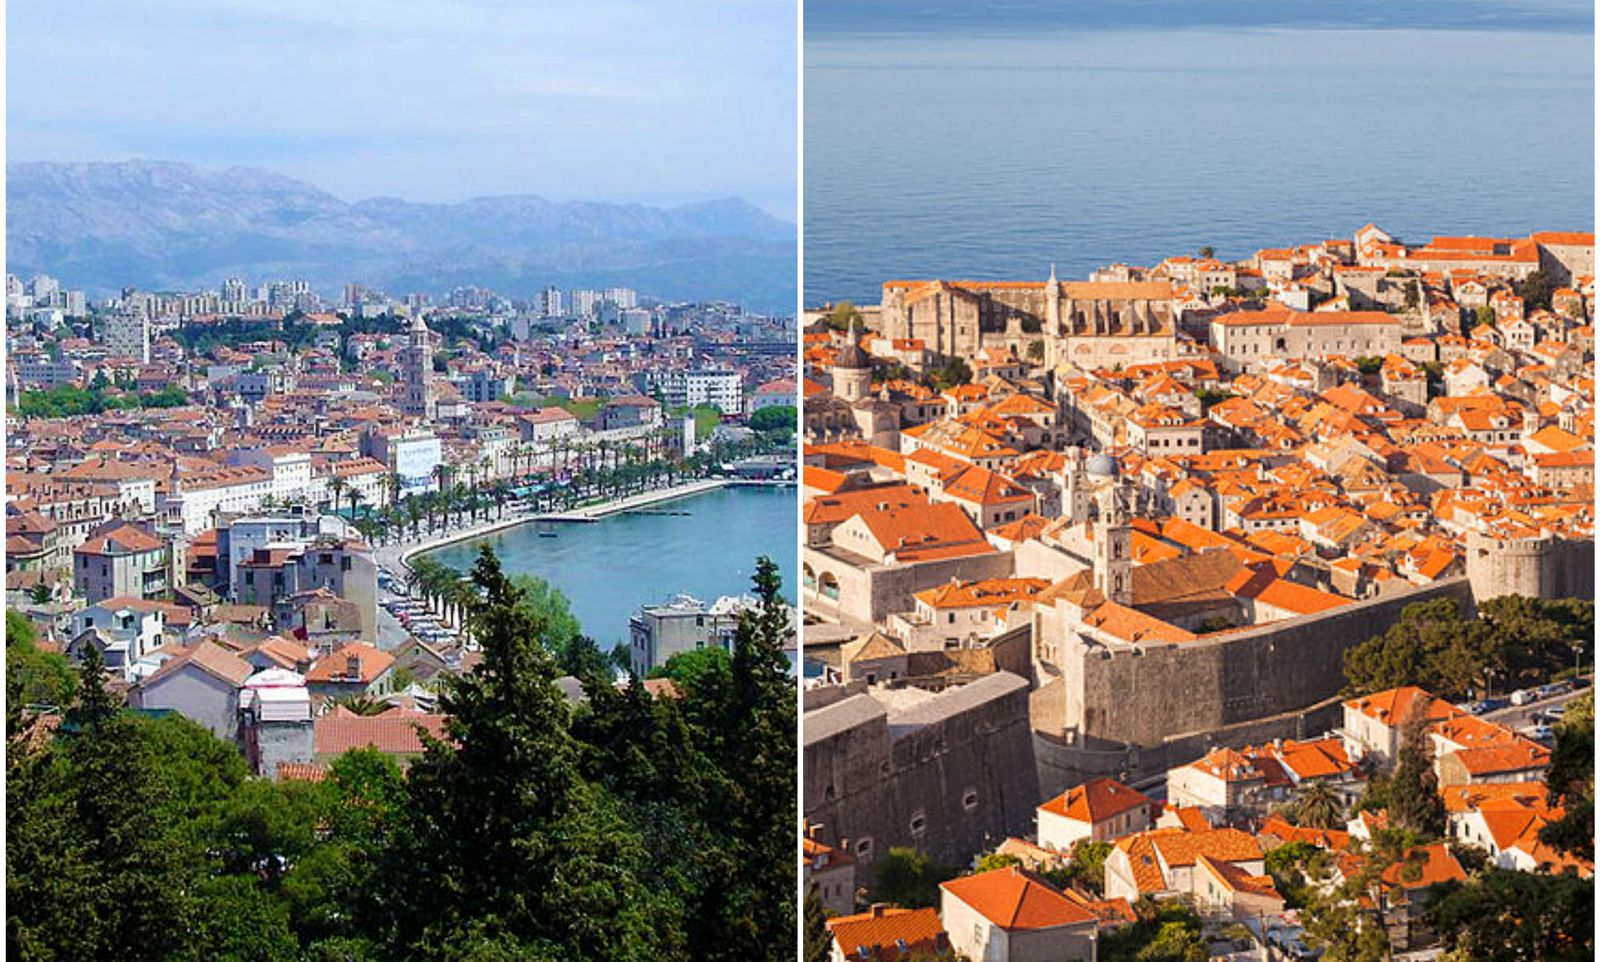 How to Get from Split to Dubrovnik